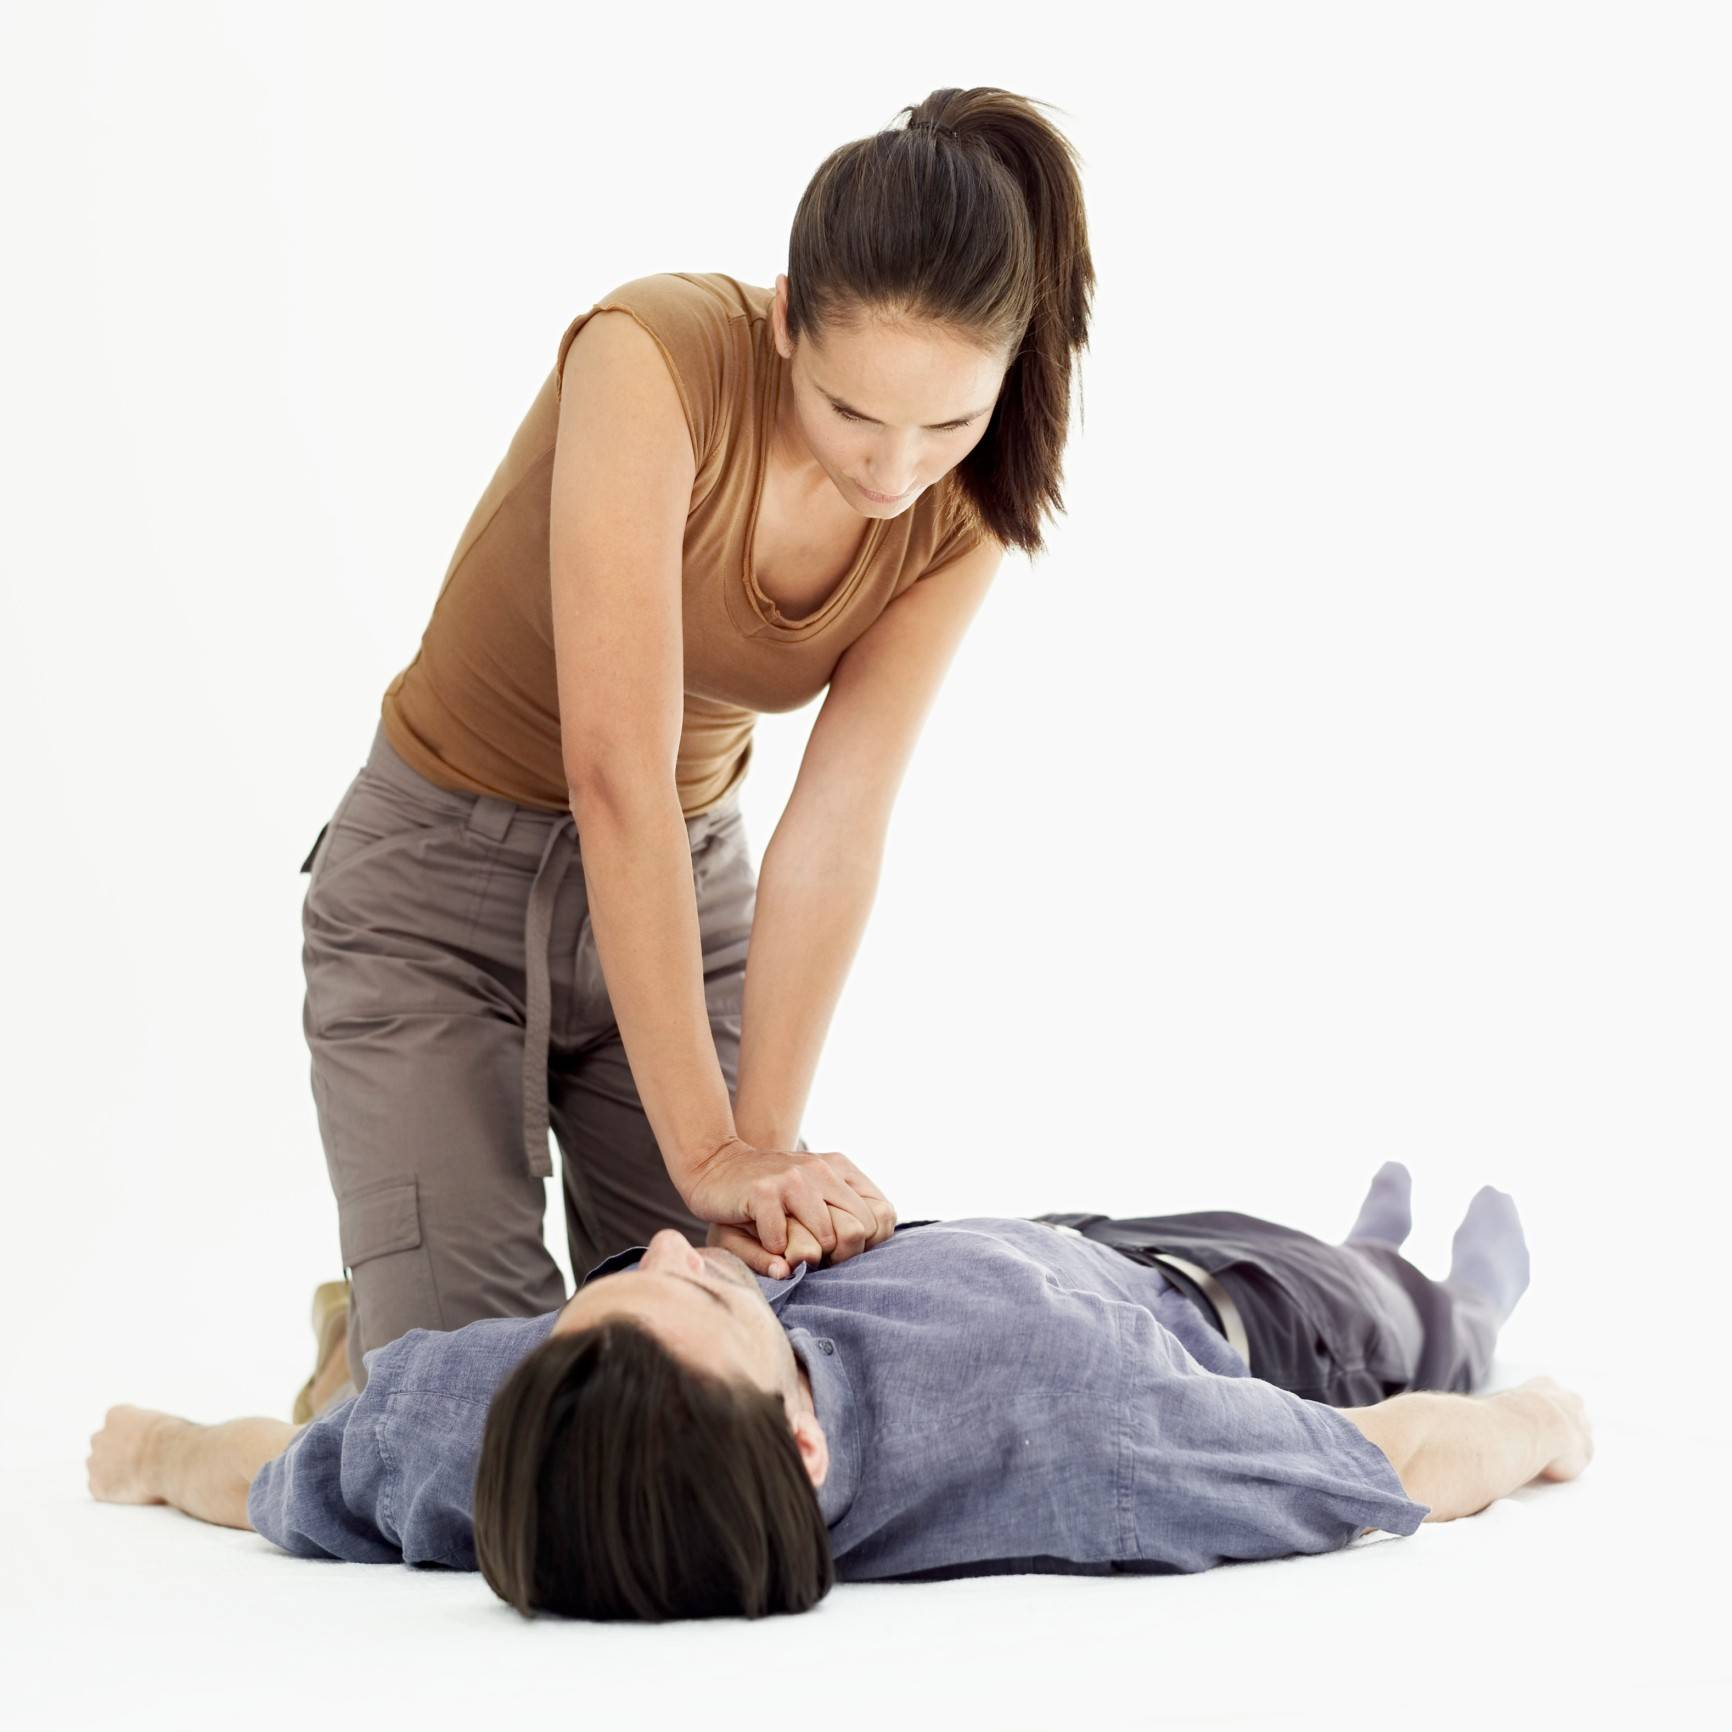 Cardiopulmonary resuscitation will be taught to all high school students starting in the fall.